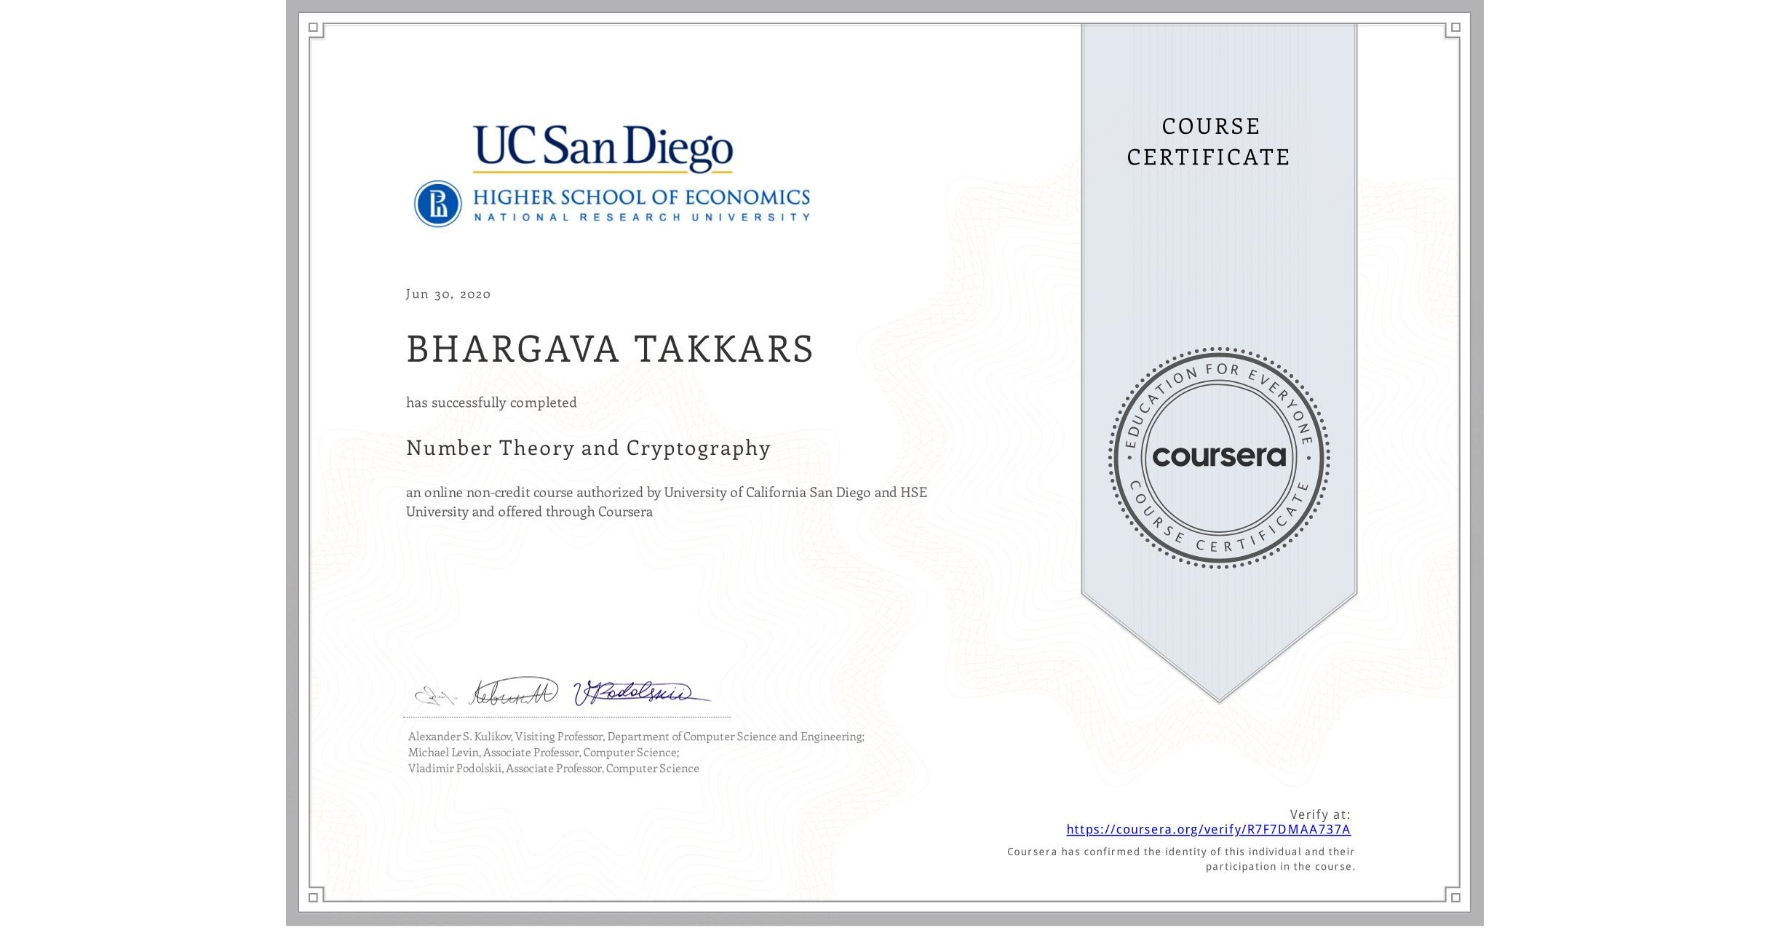 View certificate for BHARGAVA TAKKARS, Number Theory and Cryptography, an online non-credit course authorized by University of California San Diego & HSE University and offered through Coursera